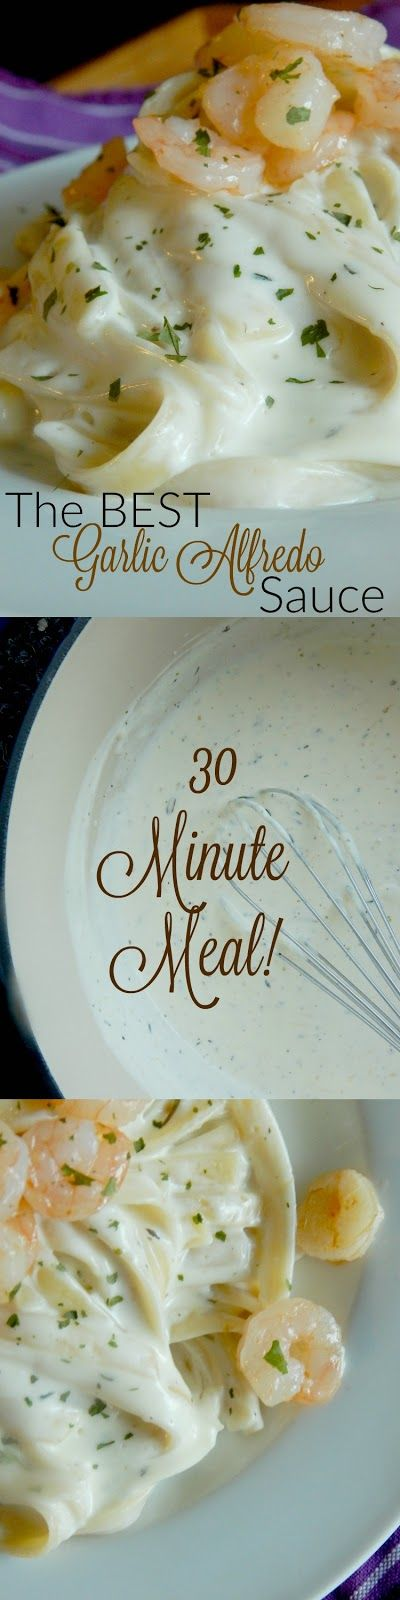 The Best Garlic Alfredo Sauce